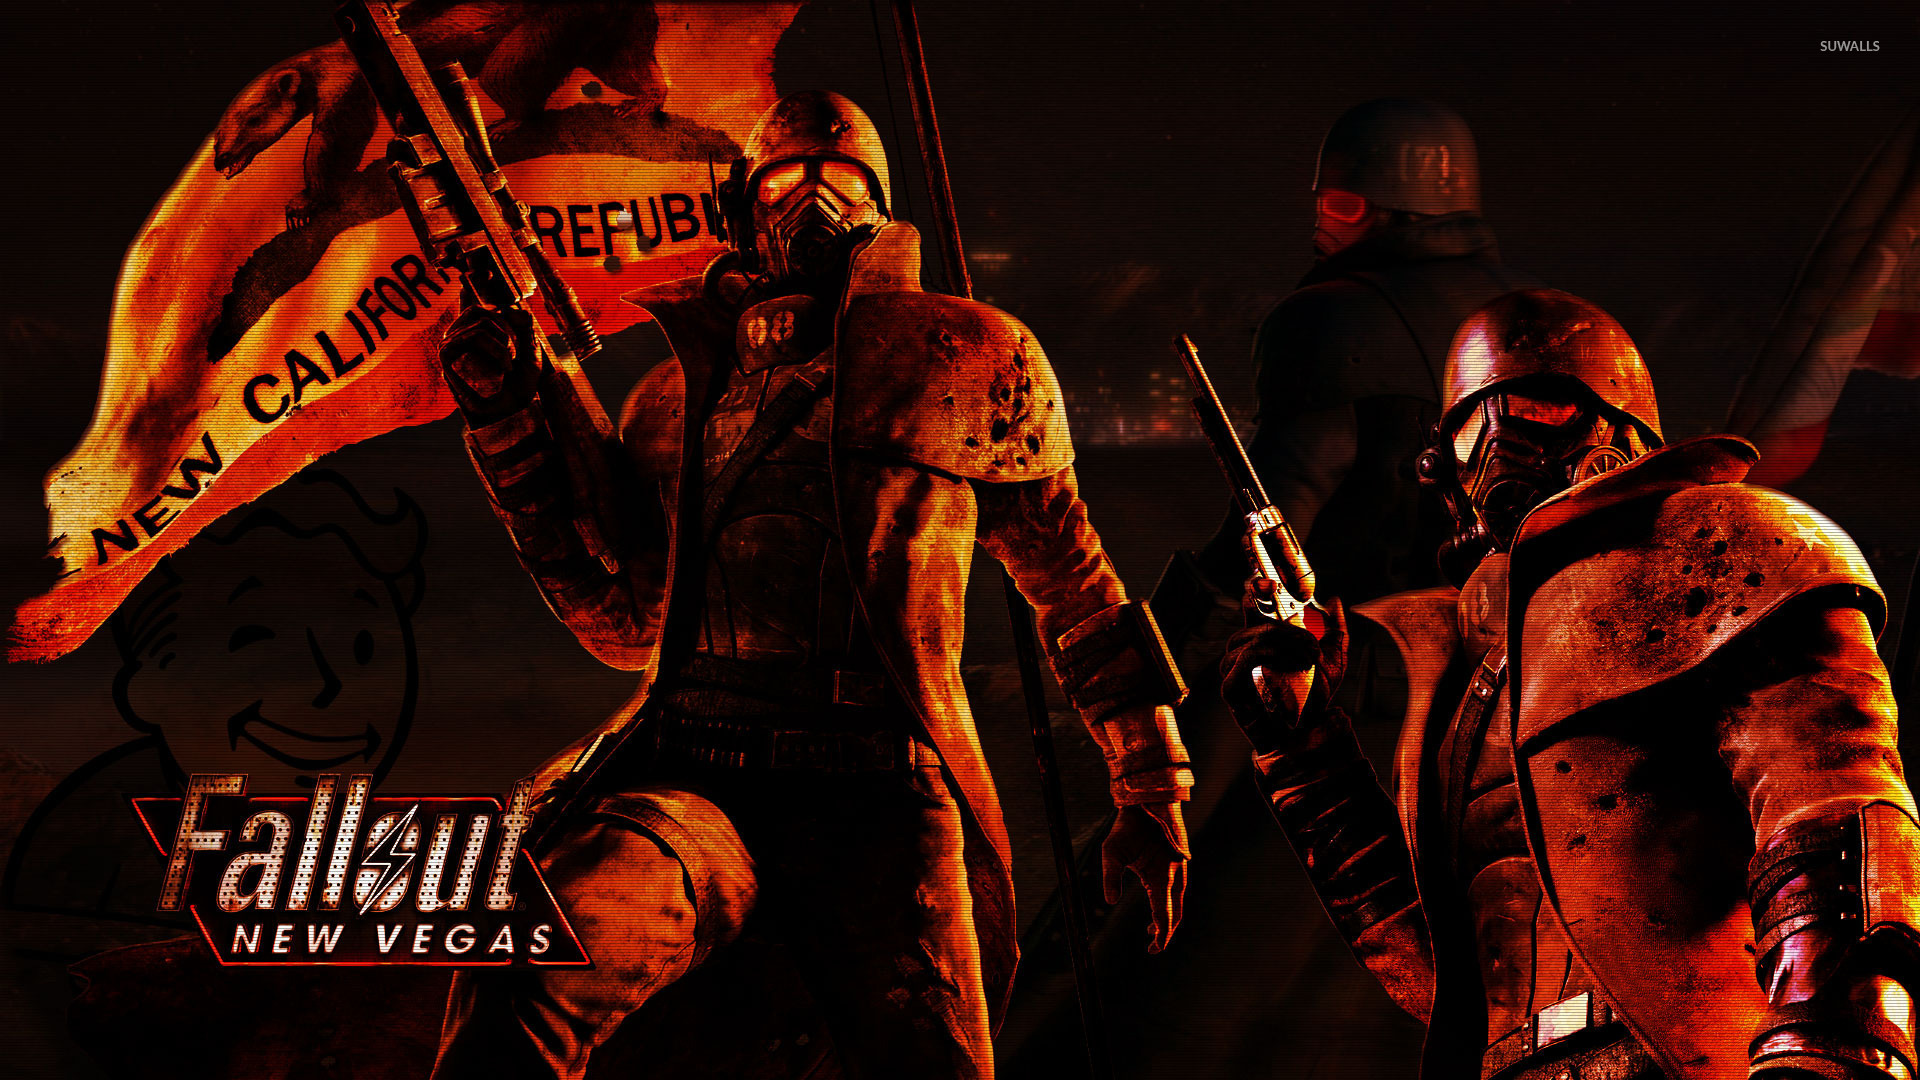 Fallout New Vegas Game HD Wallpaper | HD Wallpapers Download | 1080x1920